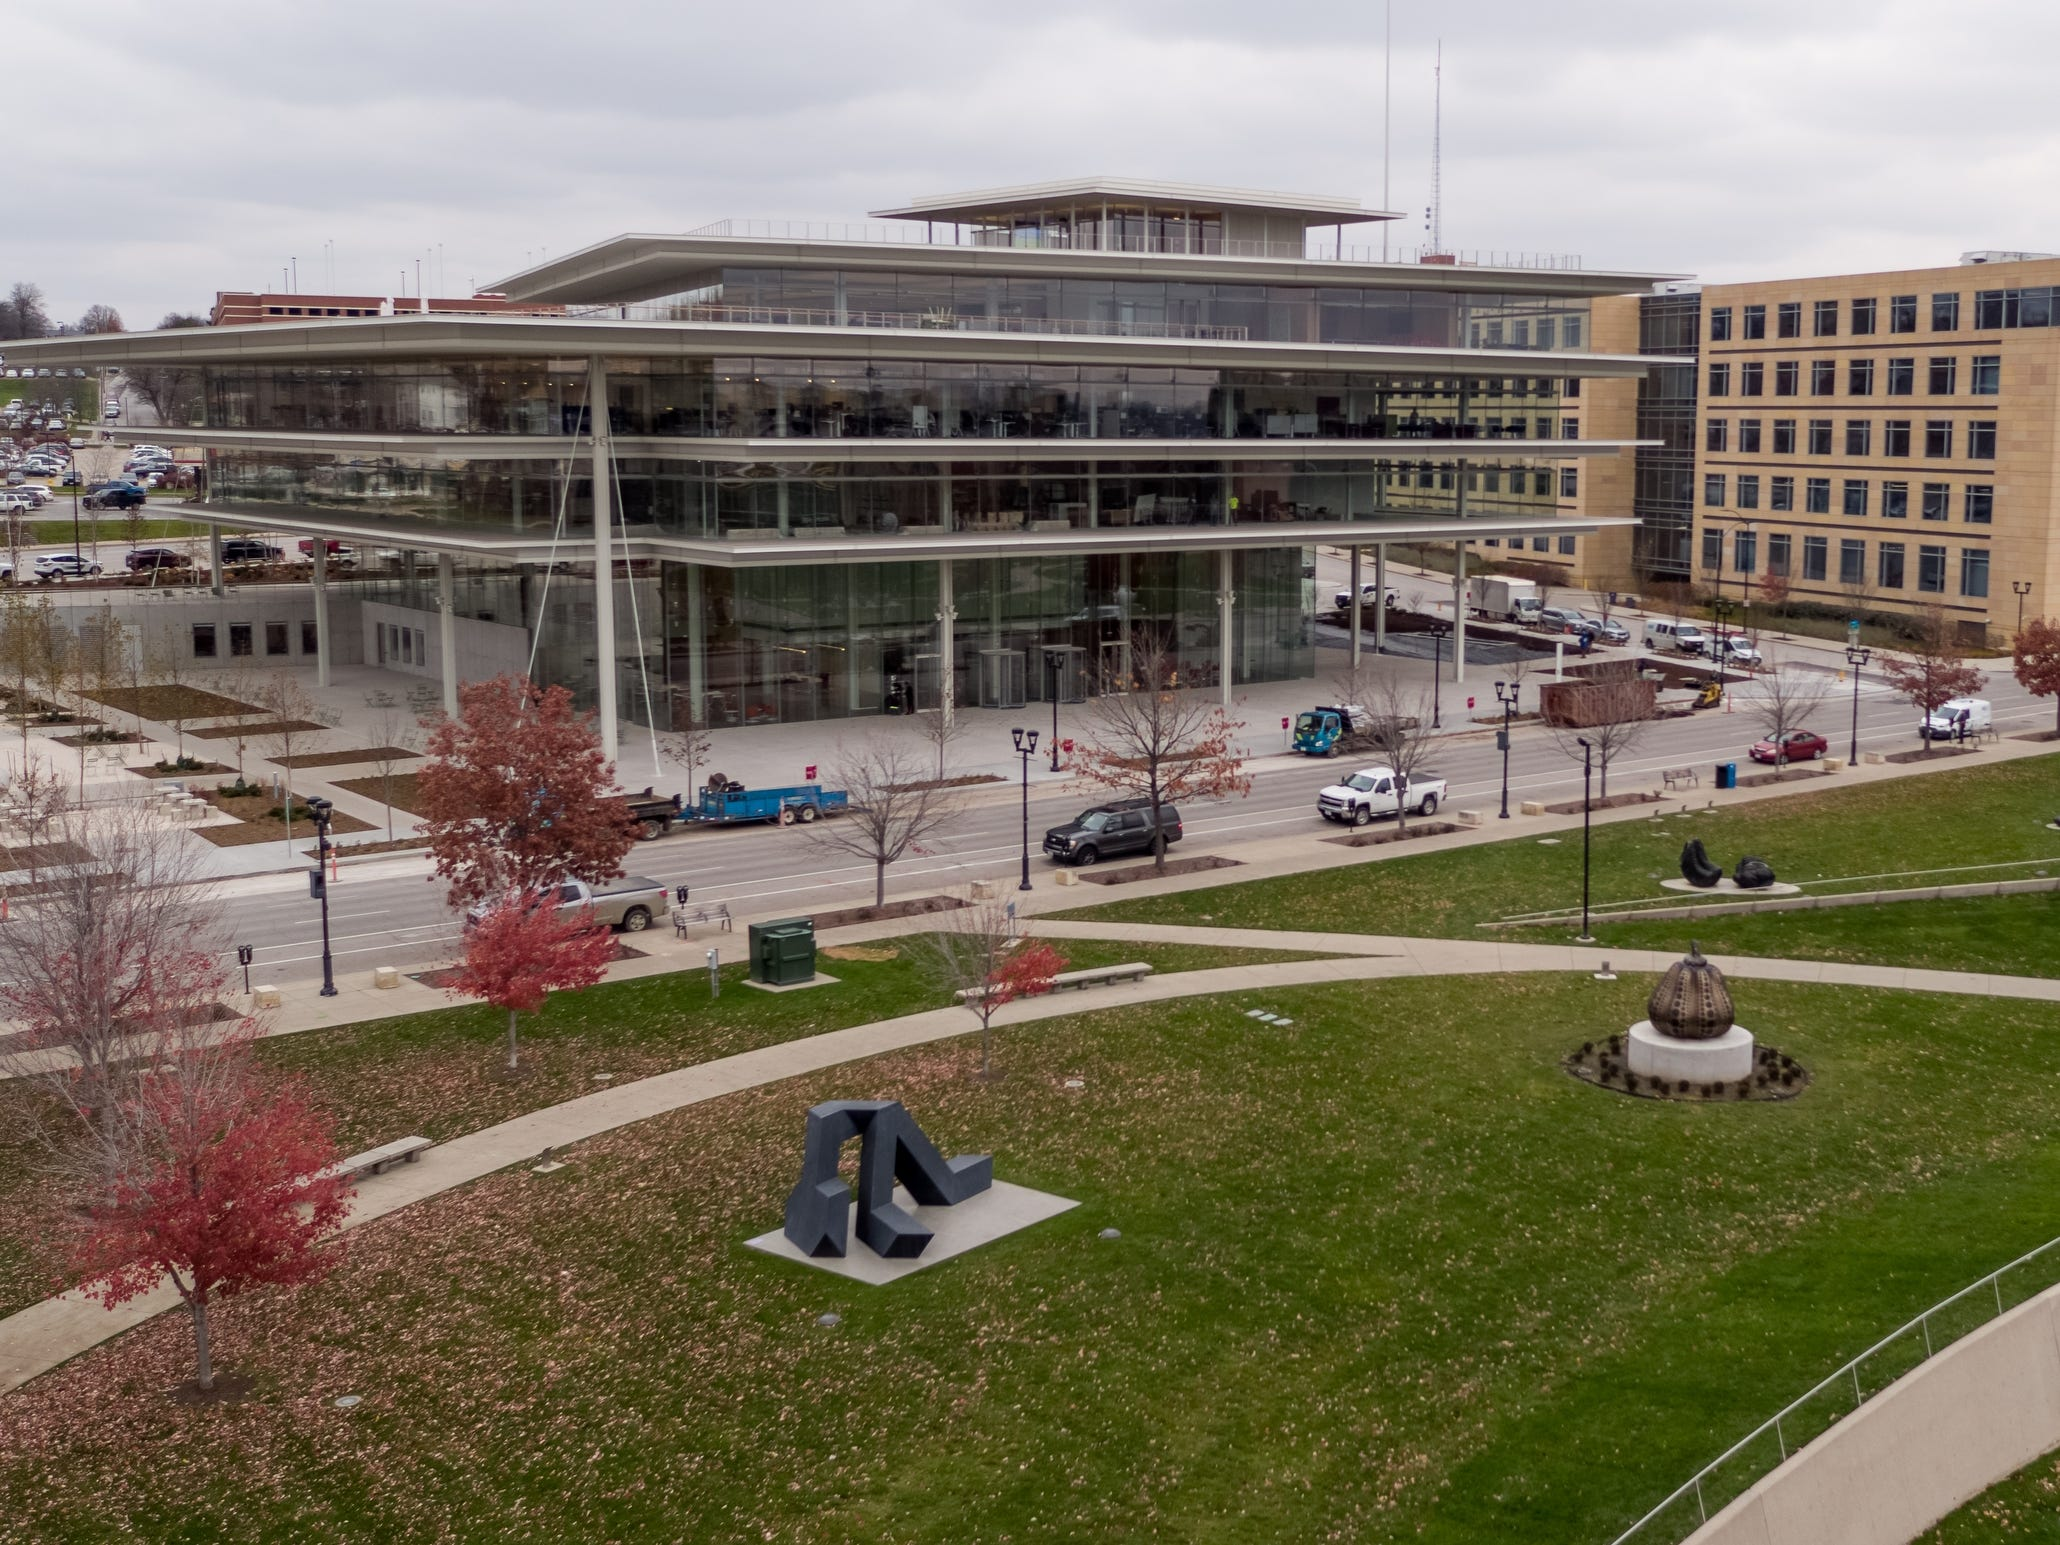 The nine Krause family businesses will now be located in the new Krause Gateway Center downtown on Friday, Nov. 9, 2018, in Des Moines.